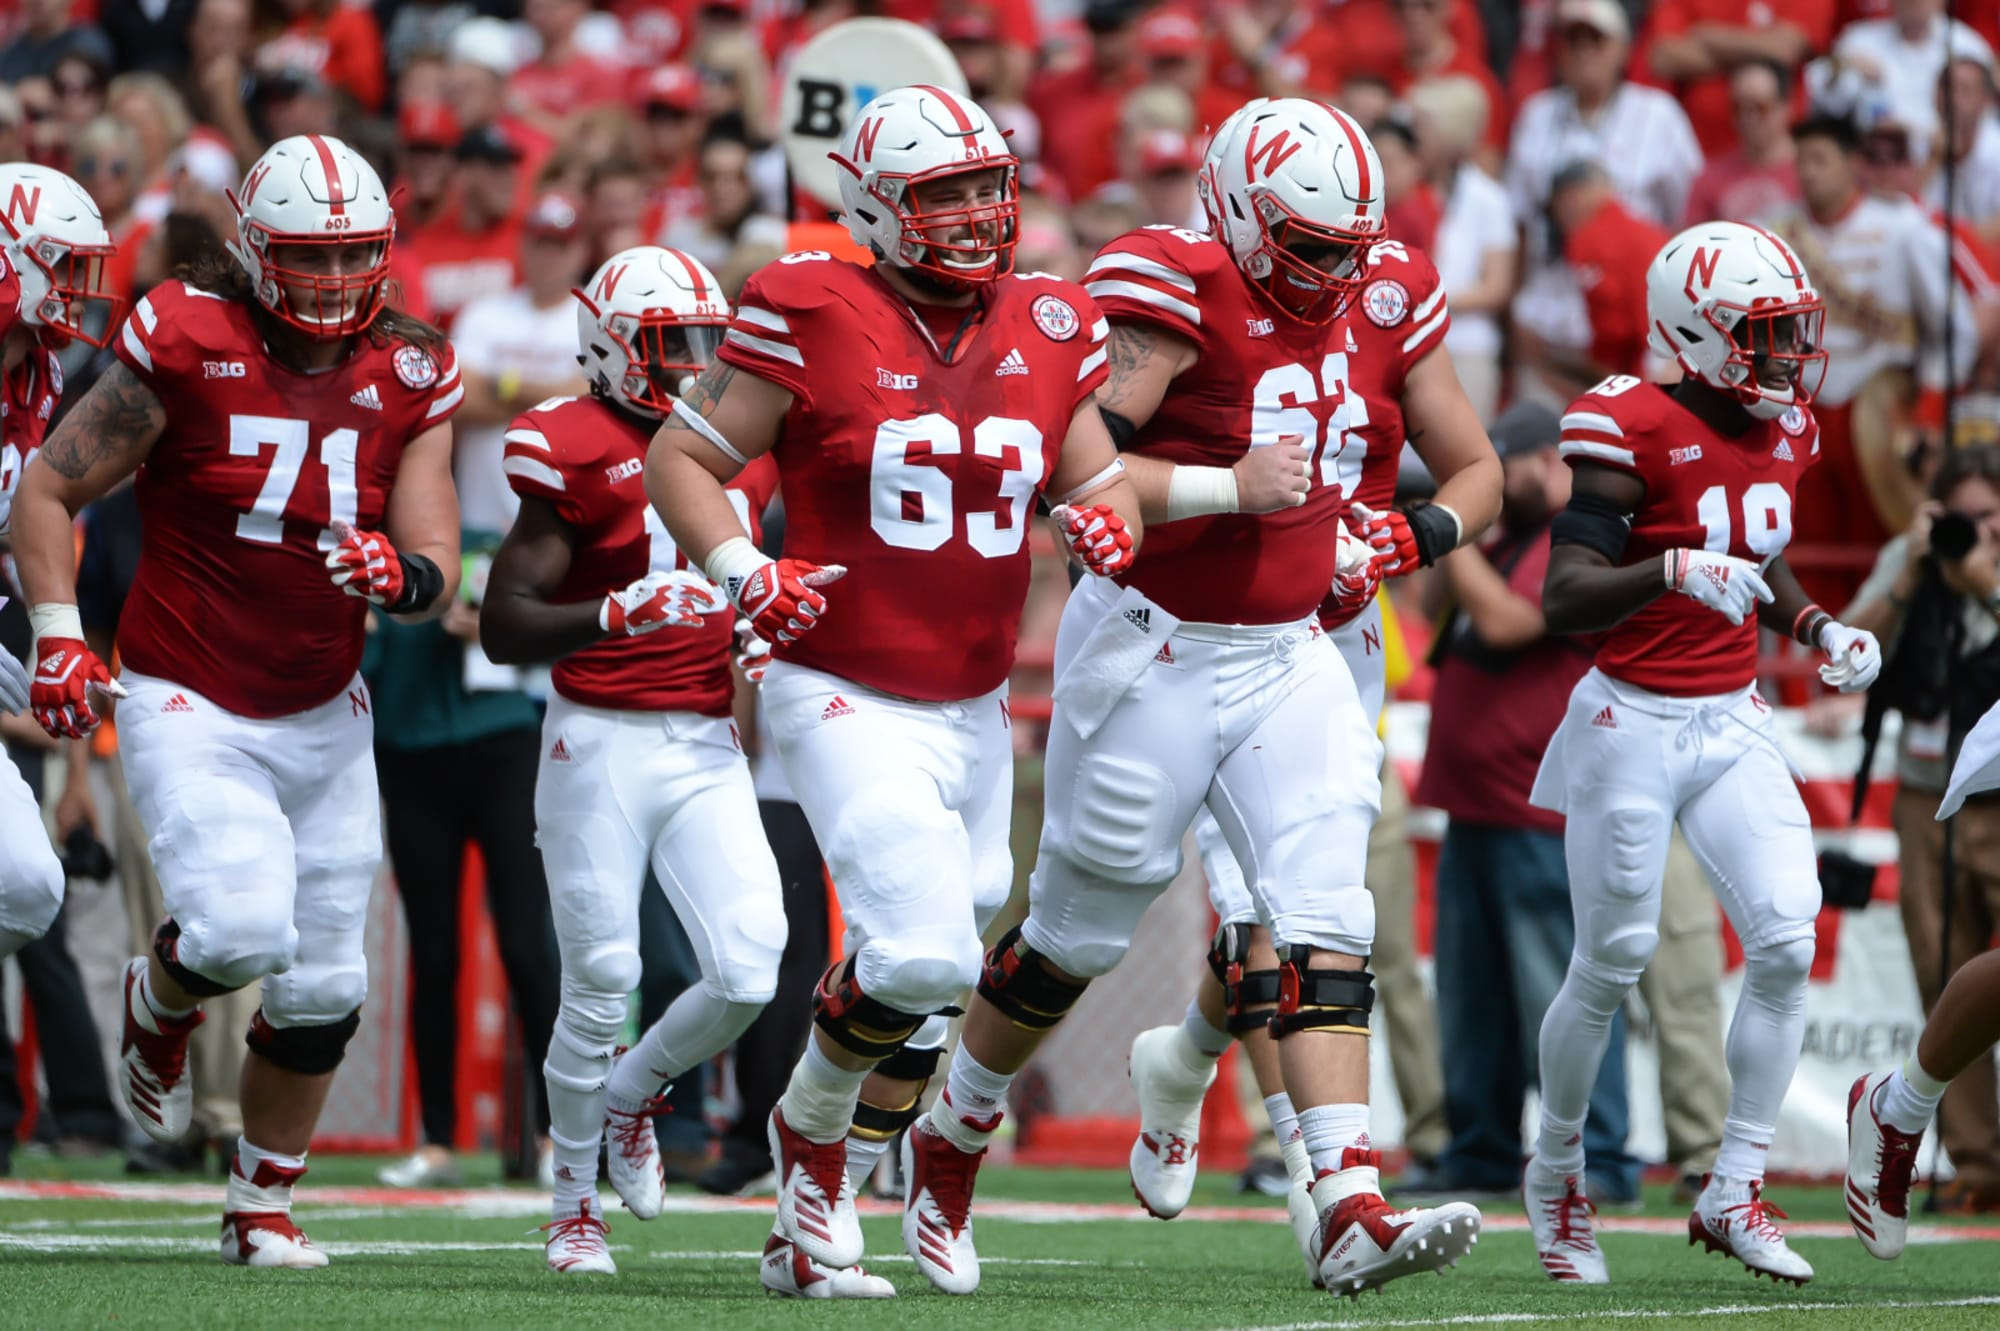 Nebraska Football: How to watch and stream Huskers vs ...